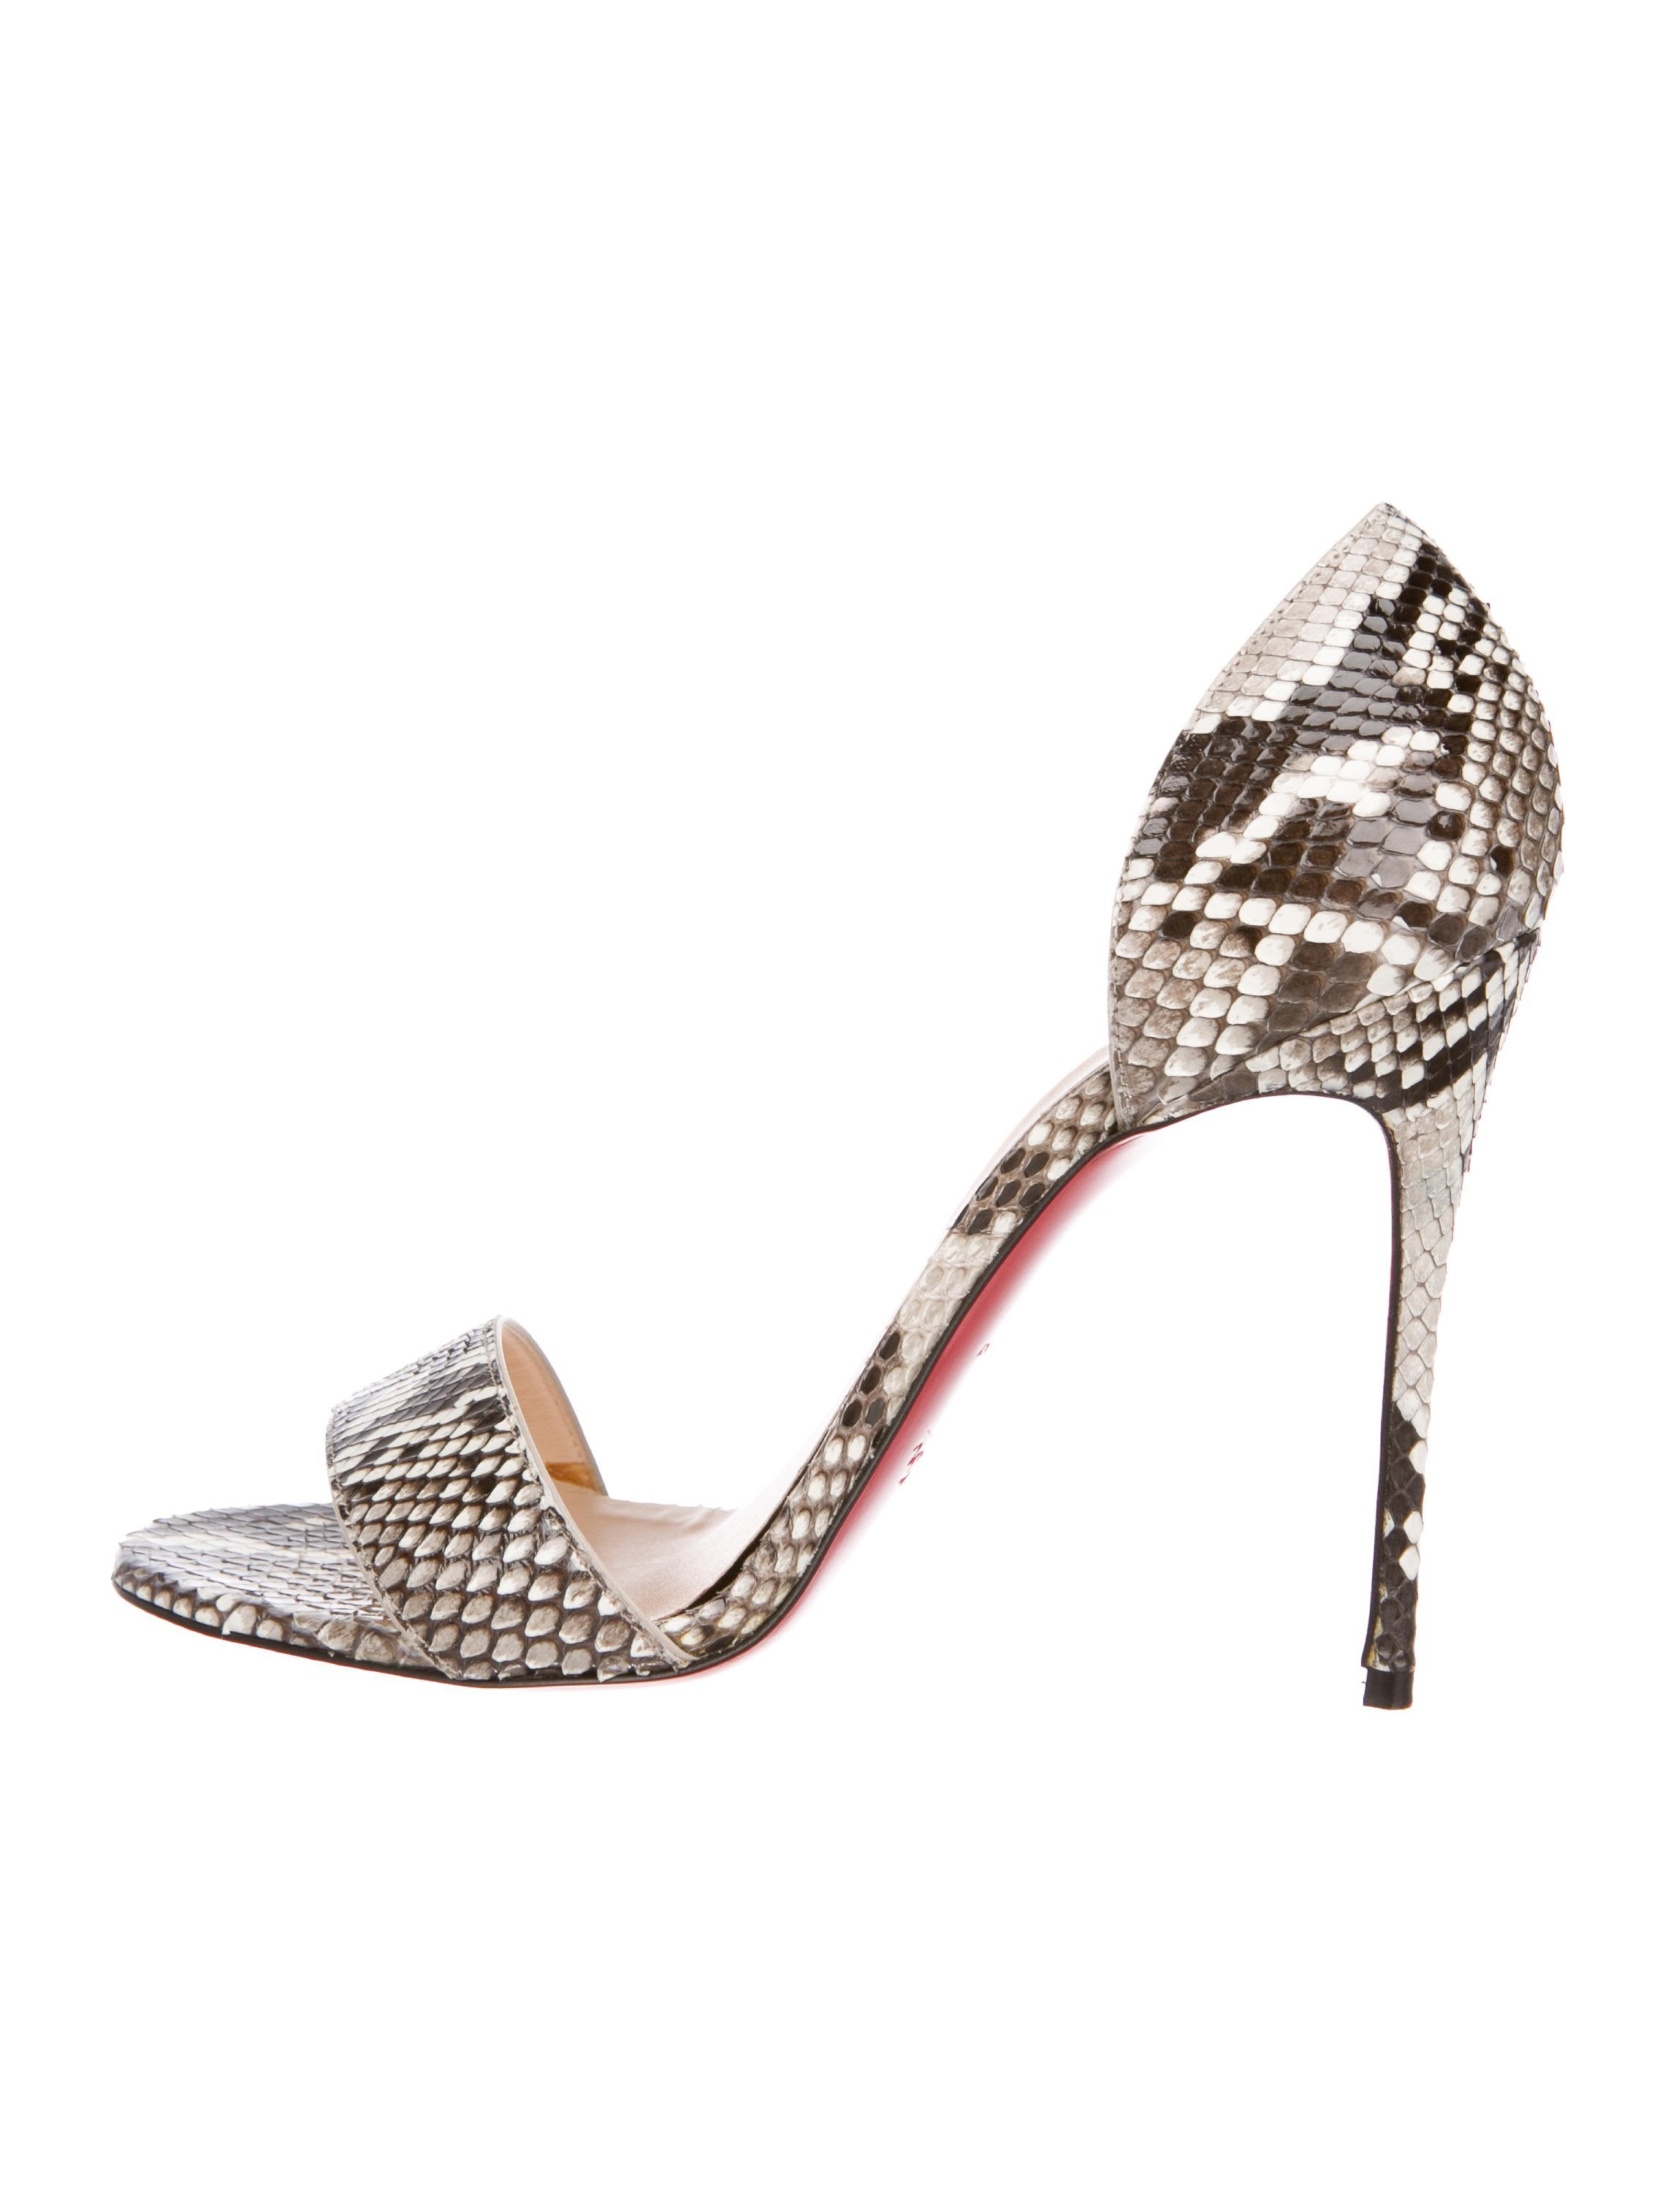 Python Sandals by Christian Louboutin